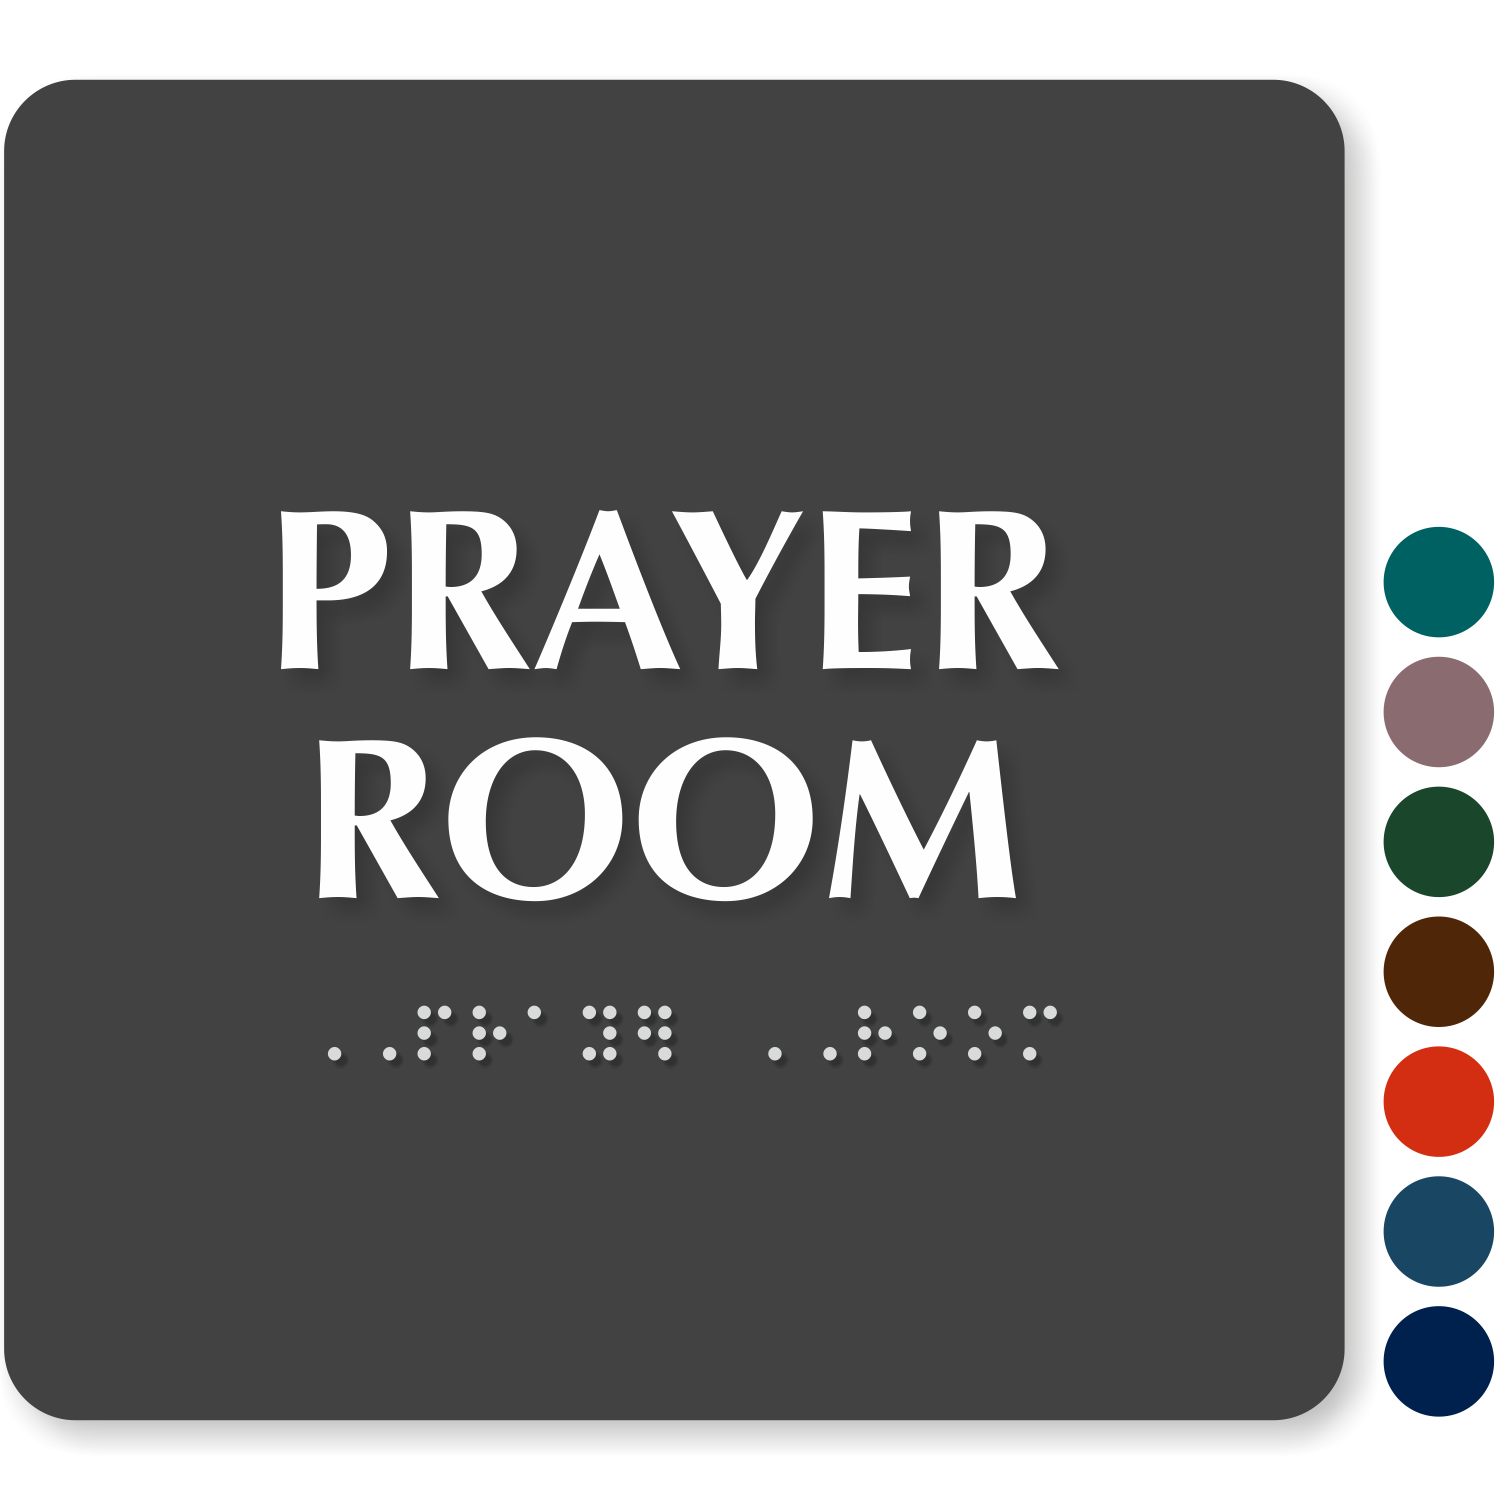 Prayer Room Signs Church Office Door Signs At Best Price